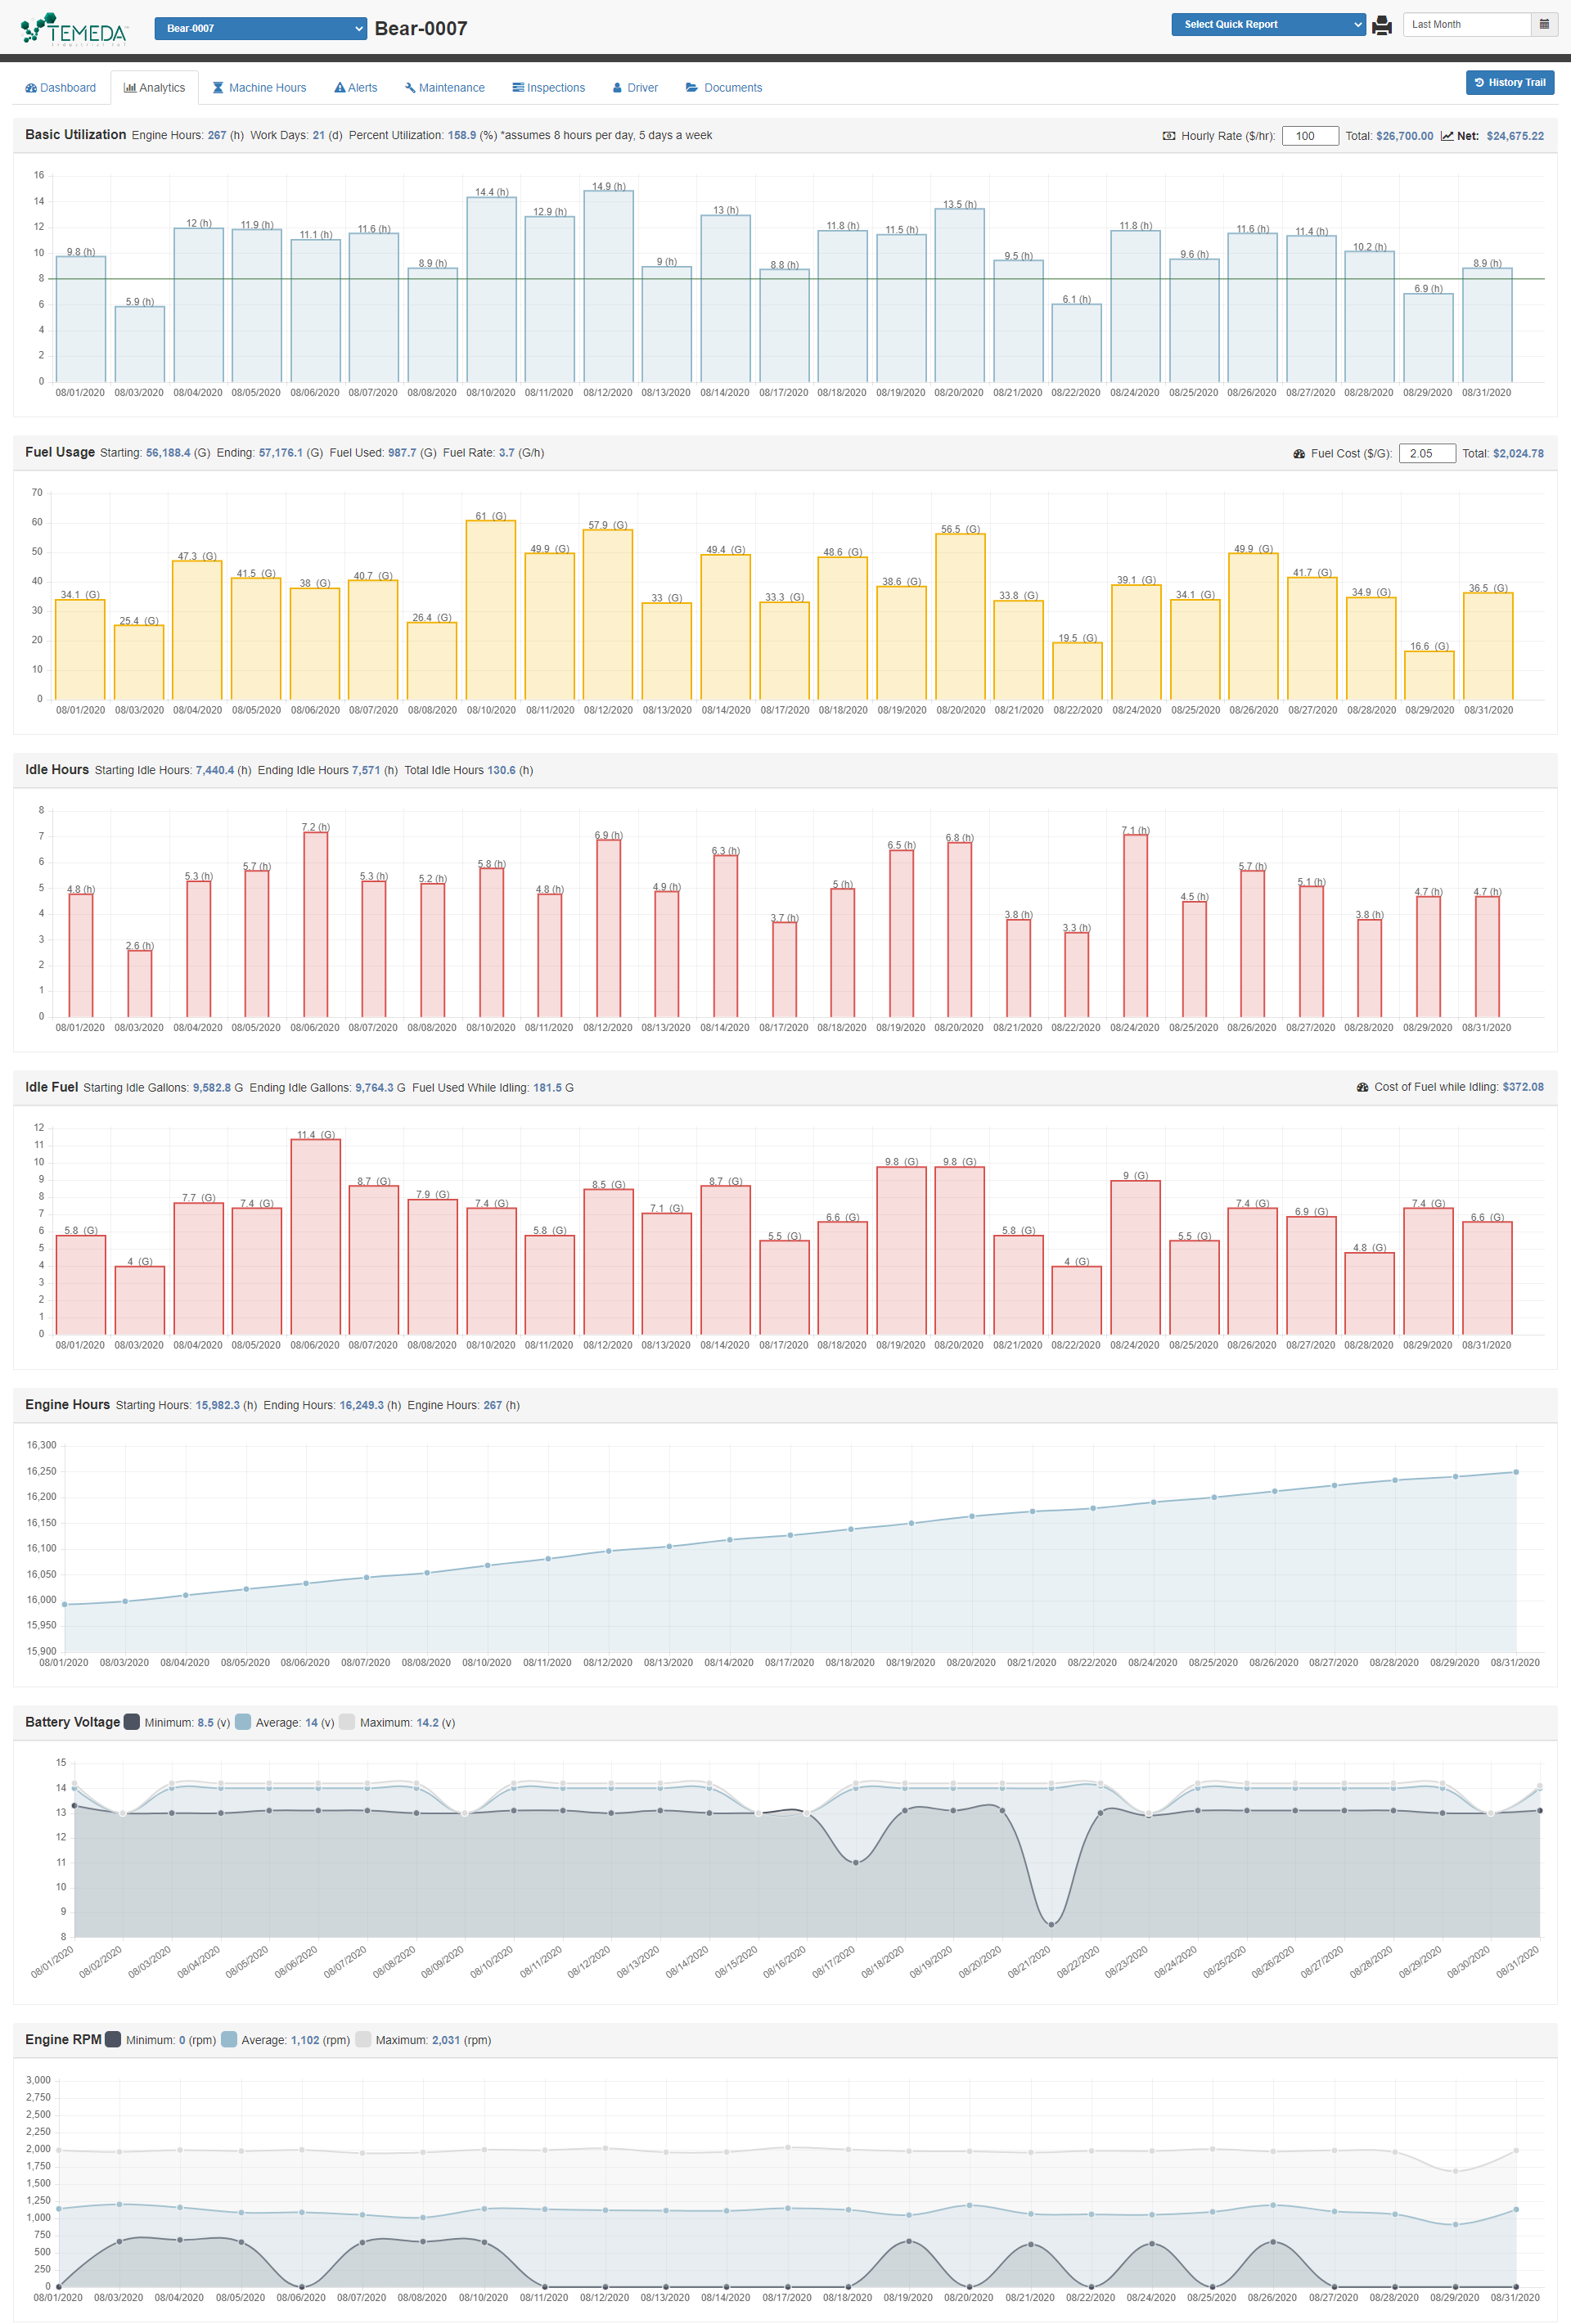 A full view of Temeda's asset dashboard analytics tab